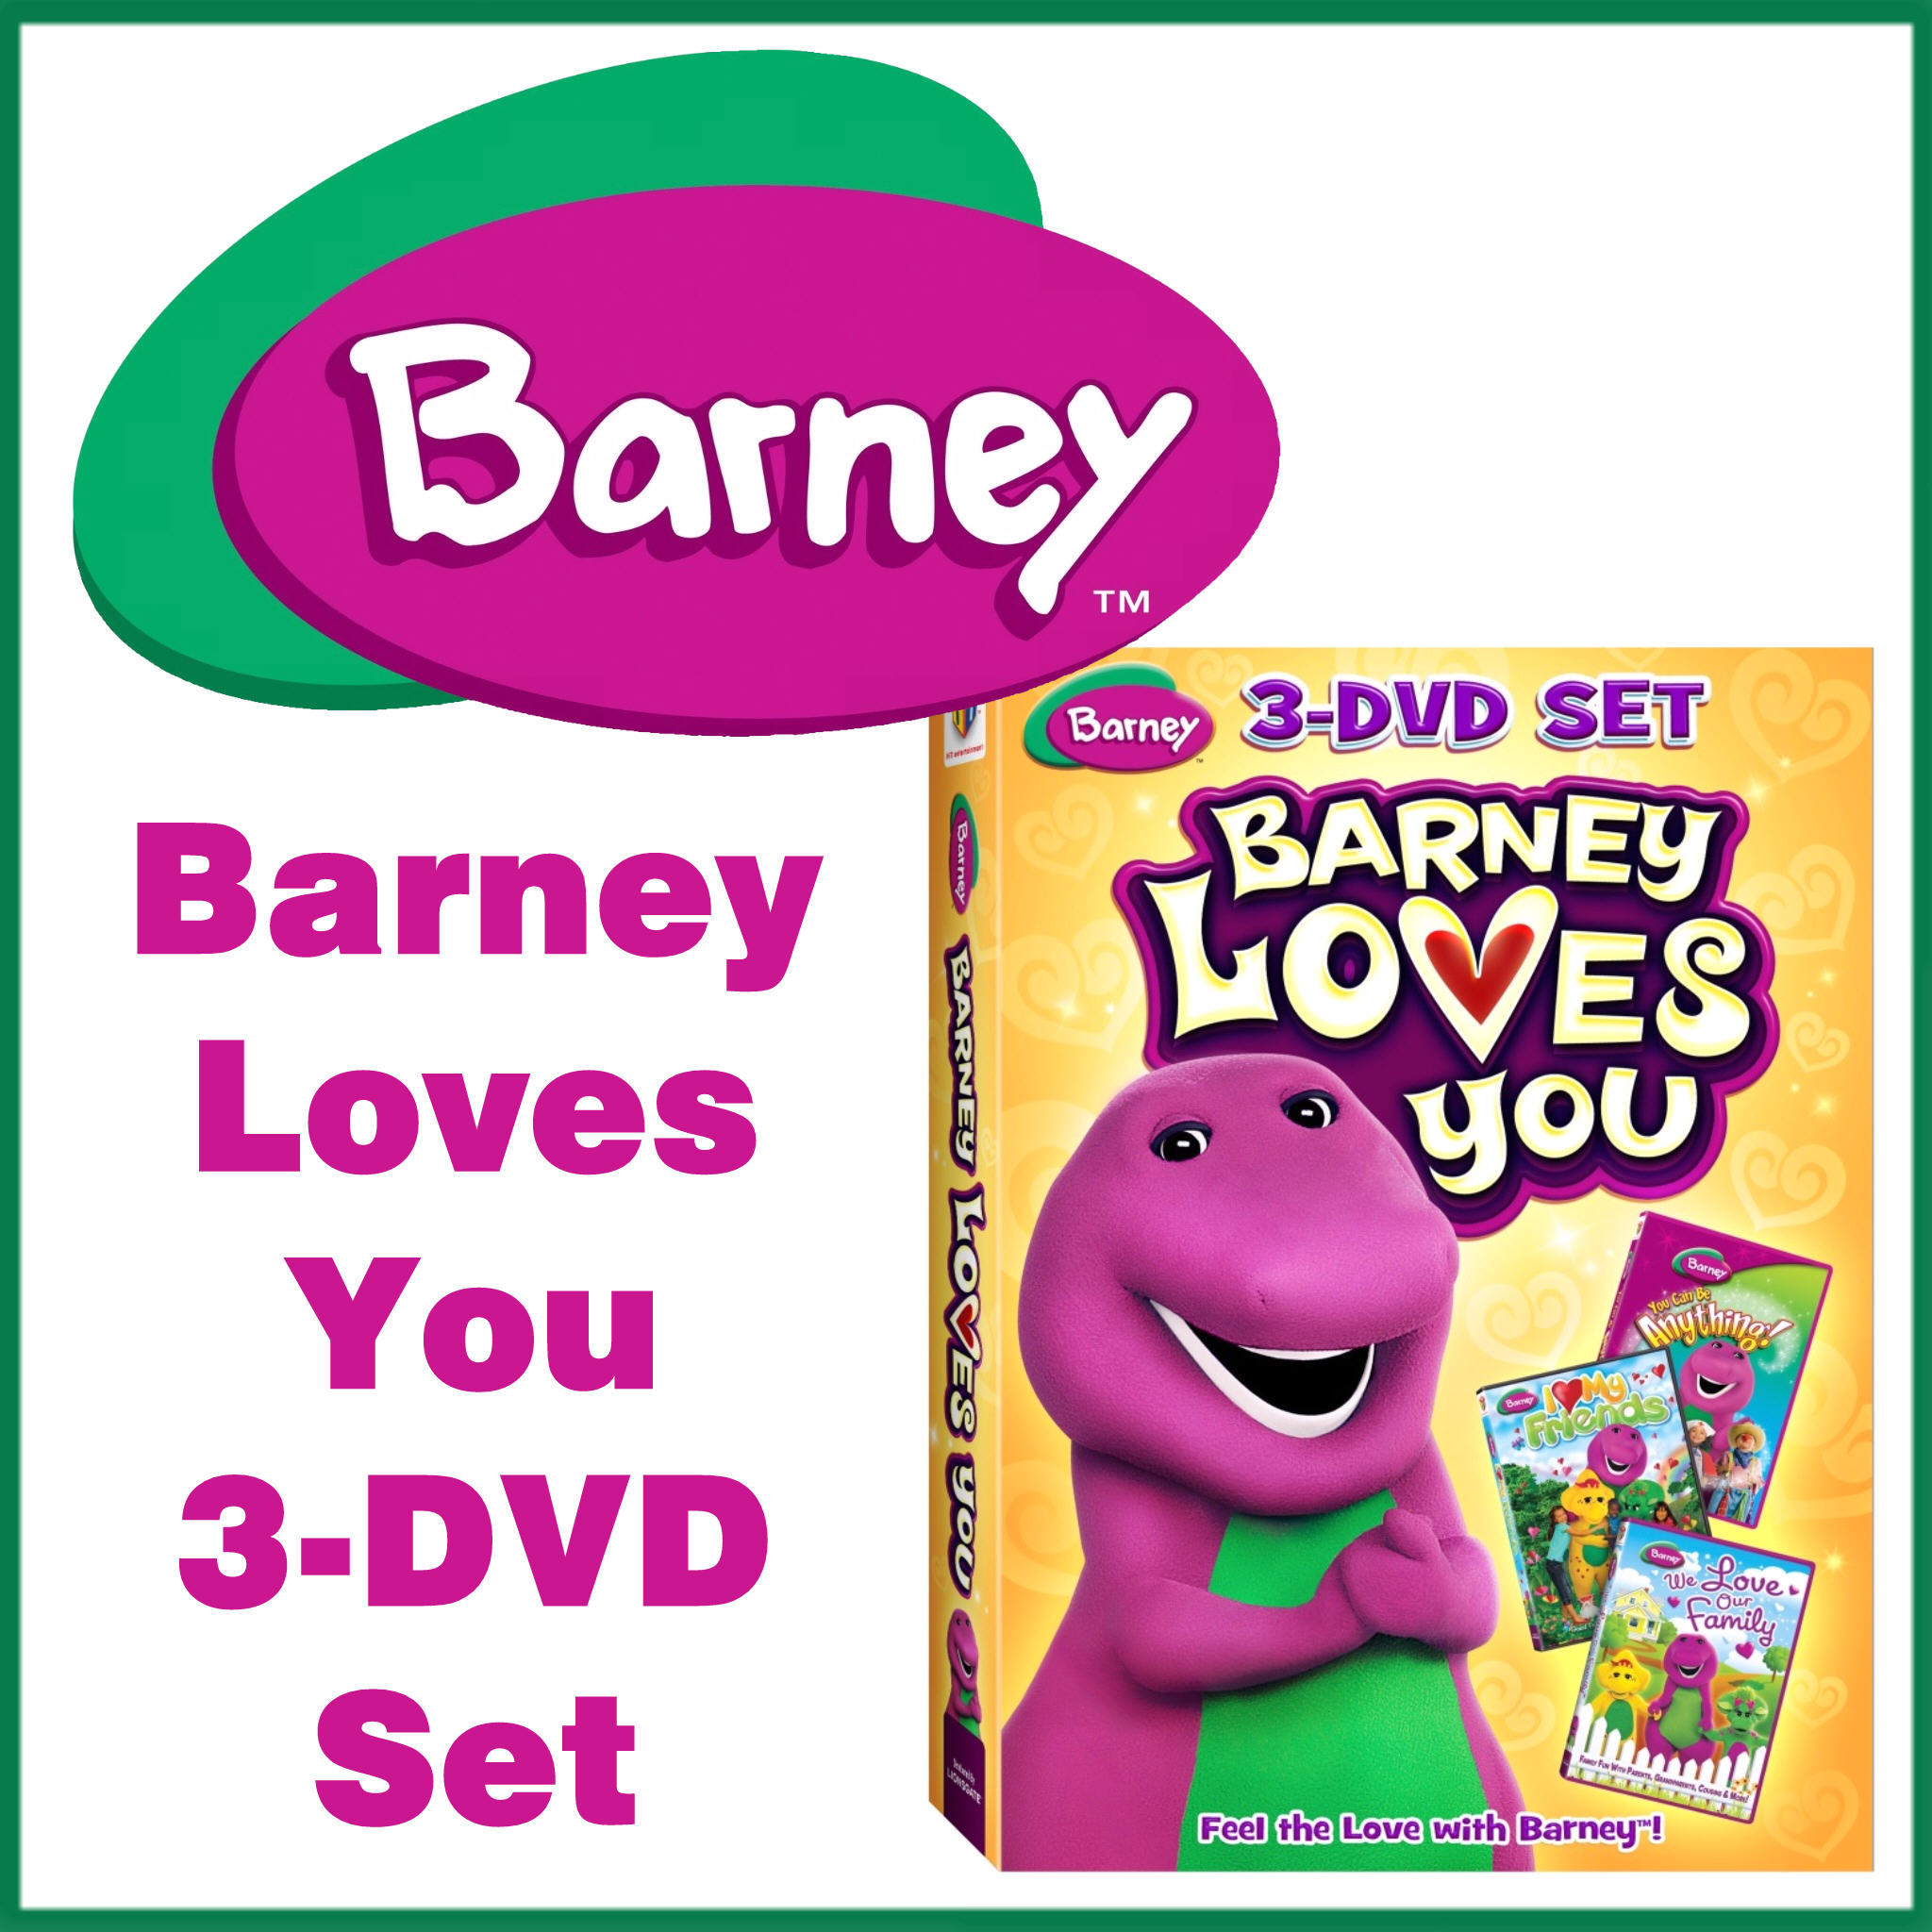 Royalegacy Reviews & More Giveaway – Barney Loves You 3-DVD Set